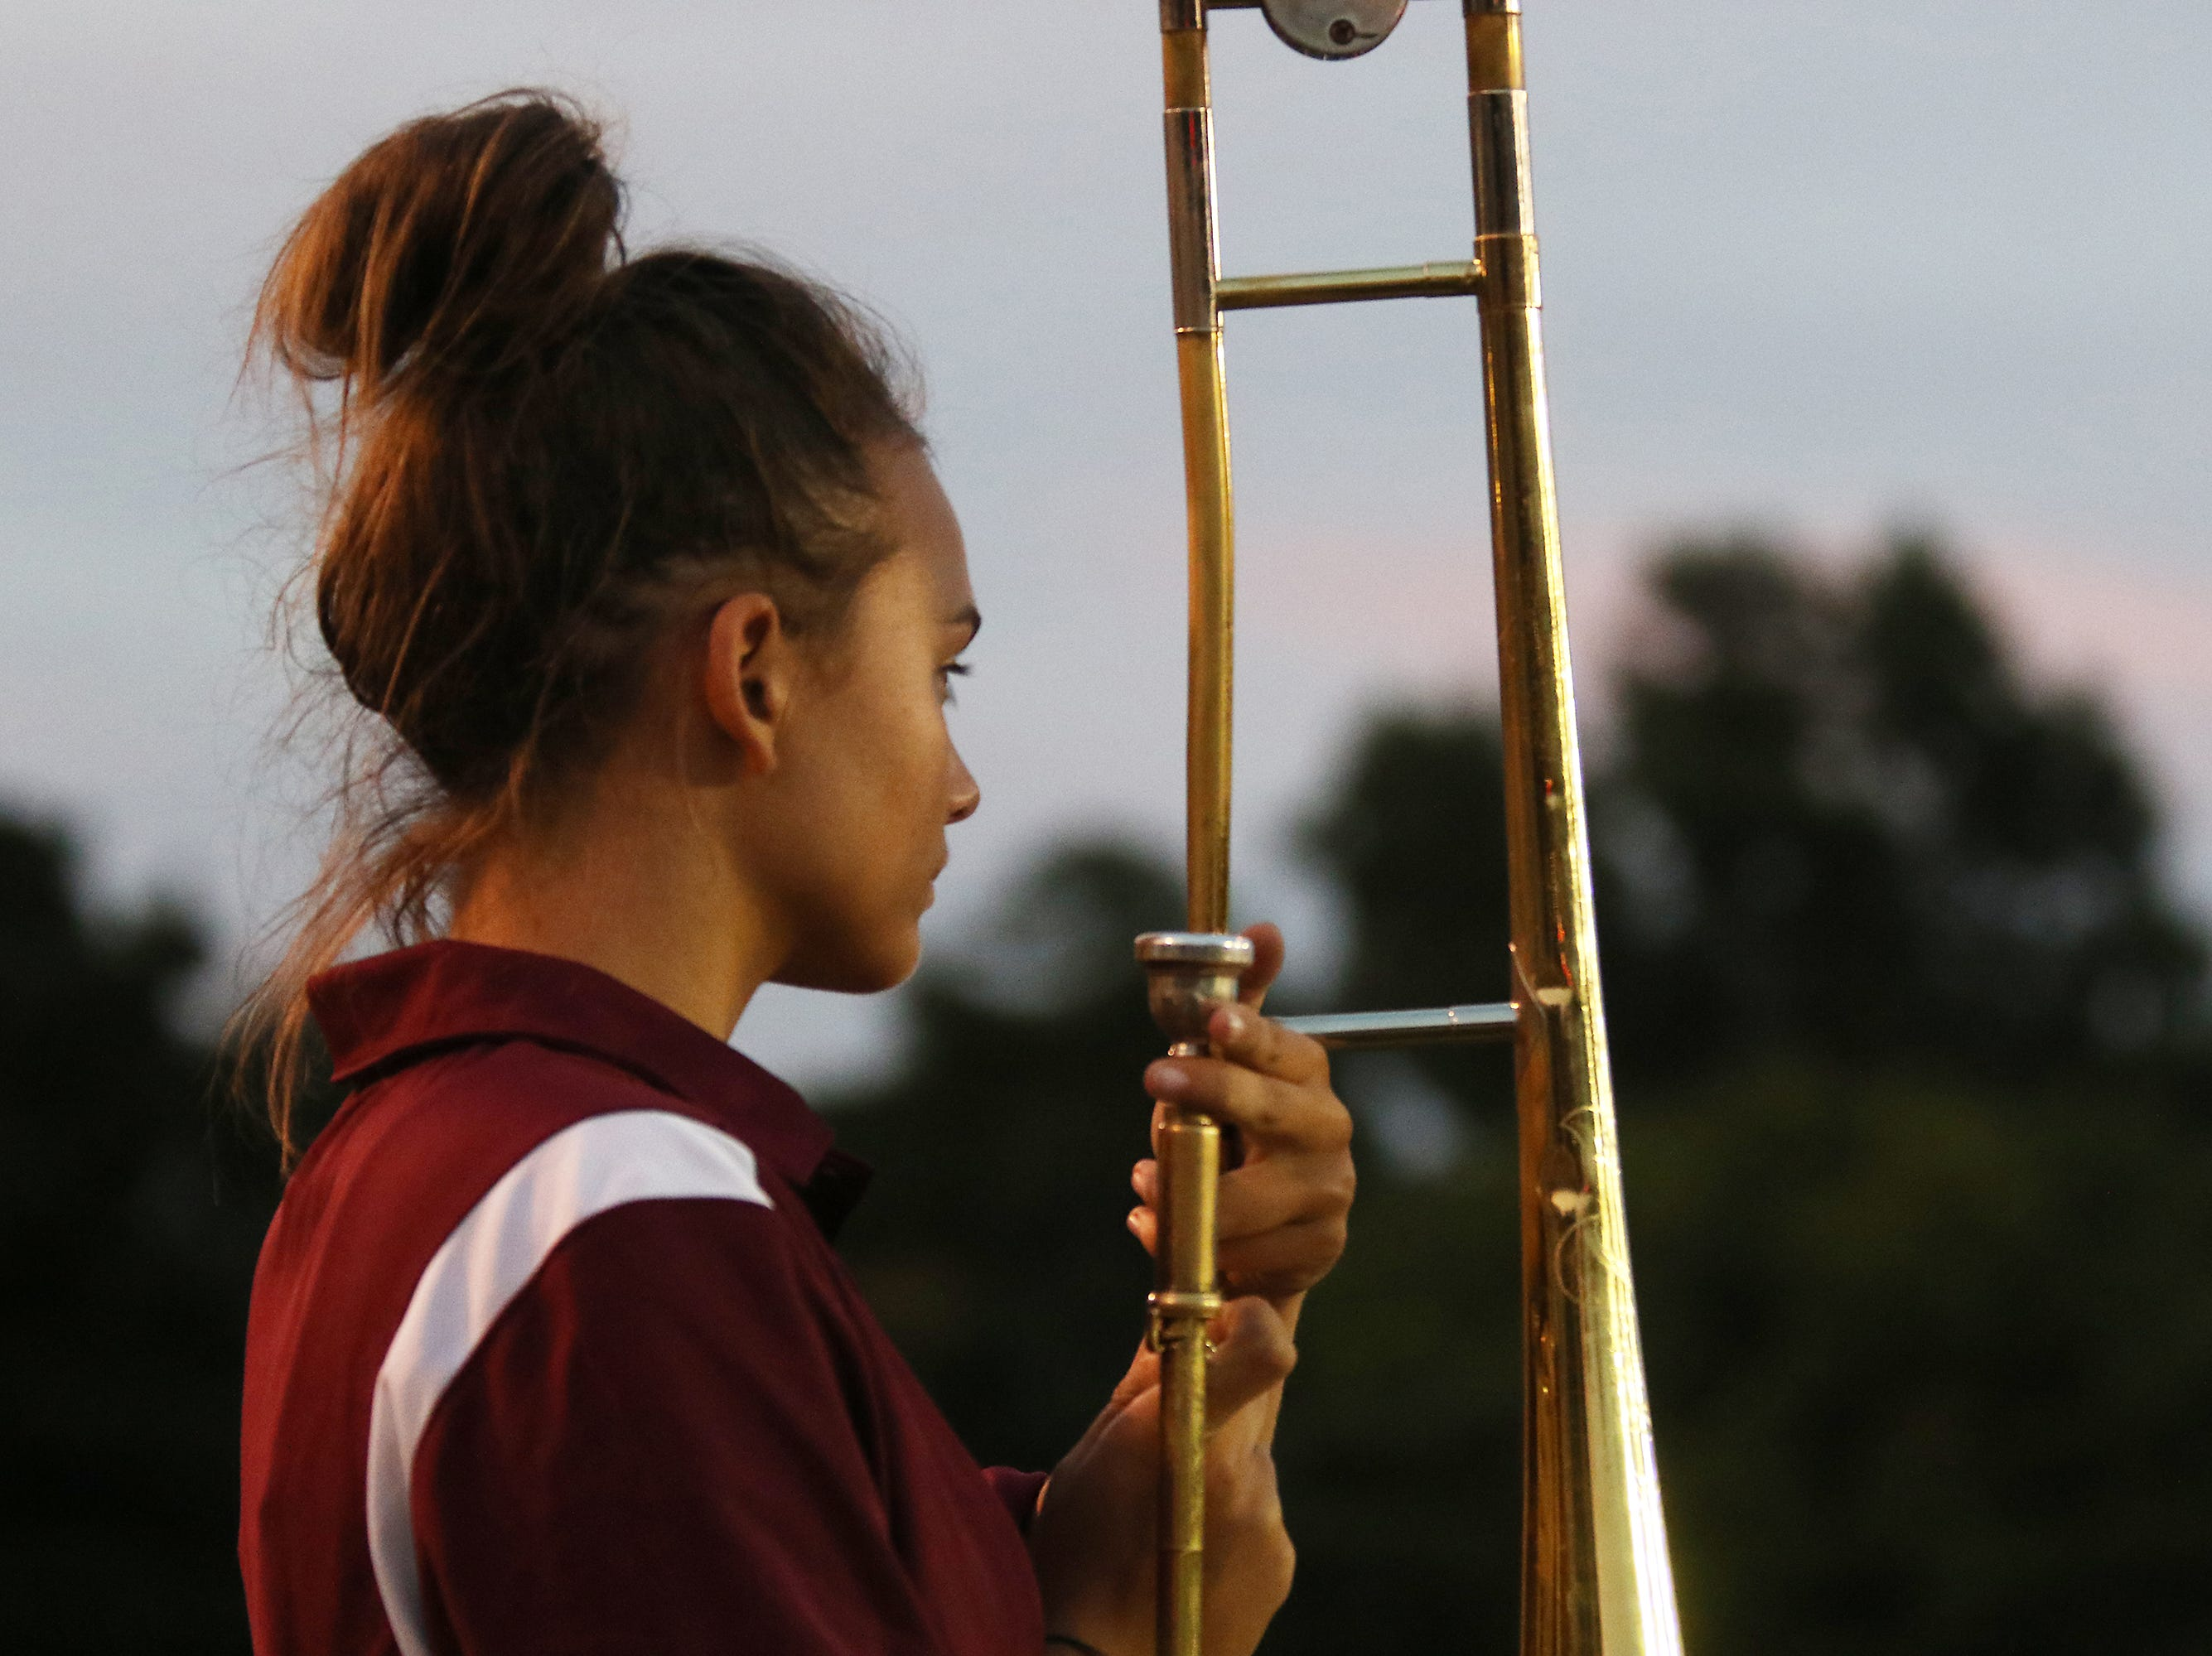 The John Glenn High School marching band performs during halftime against Meadowbrook.